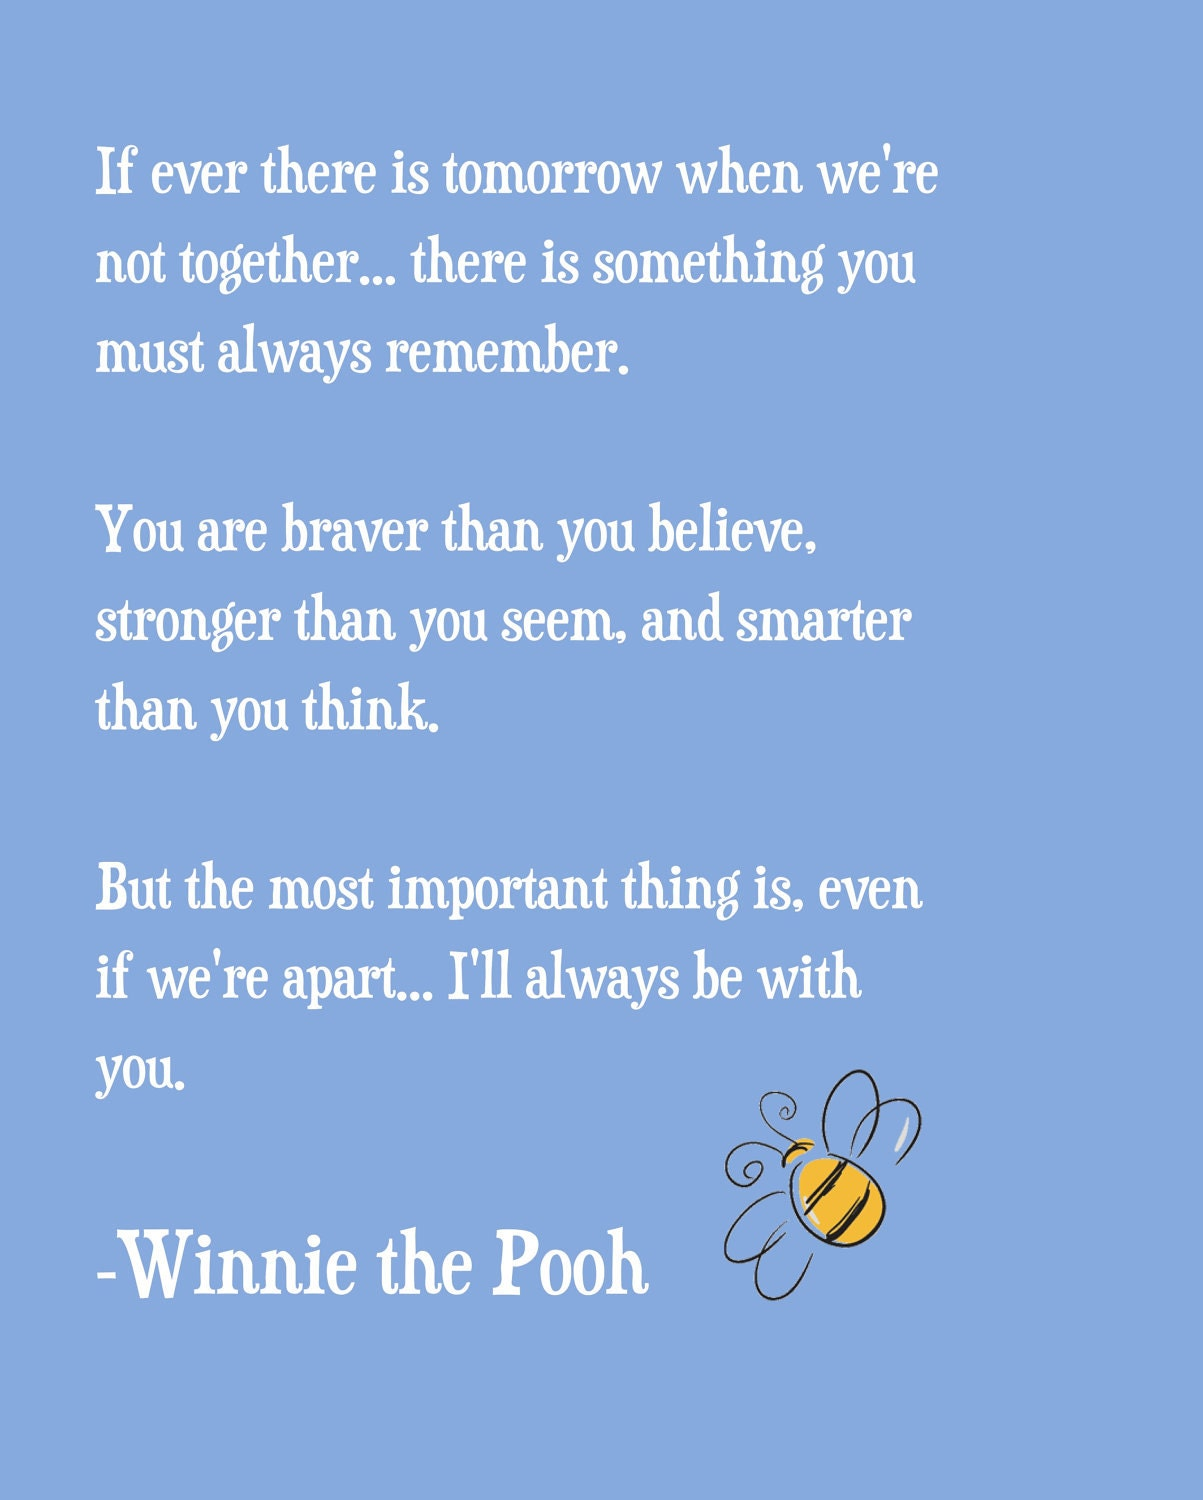 Winnie The Pooh Friends Quote: Winnie The Pooh Quotes. QuotesGram